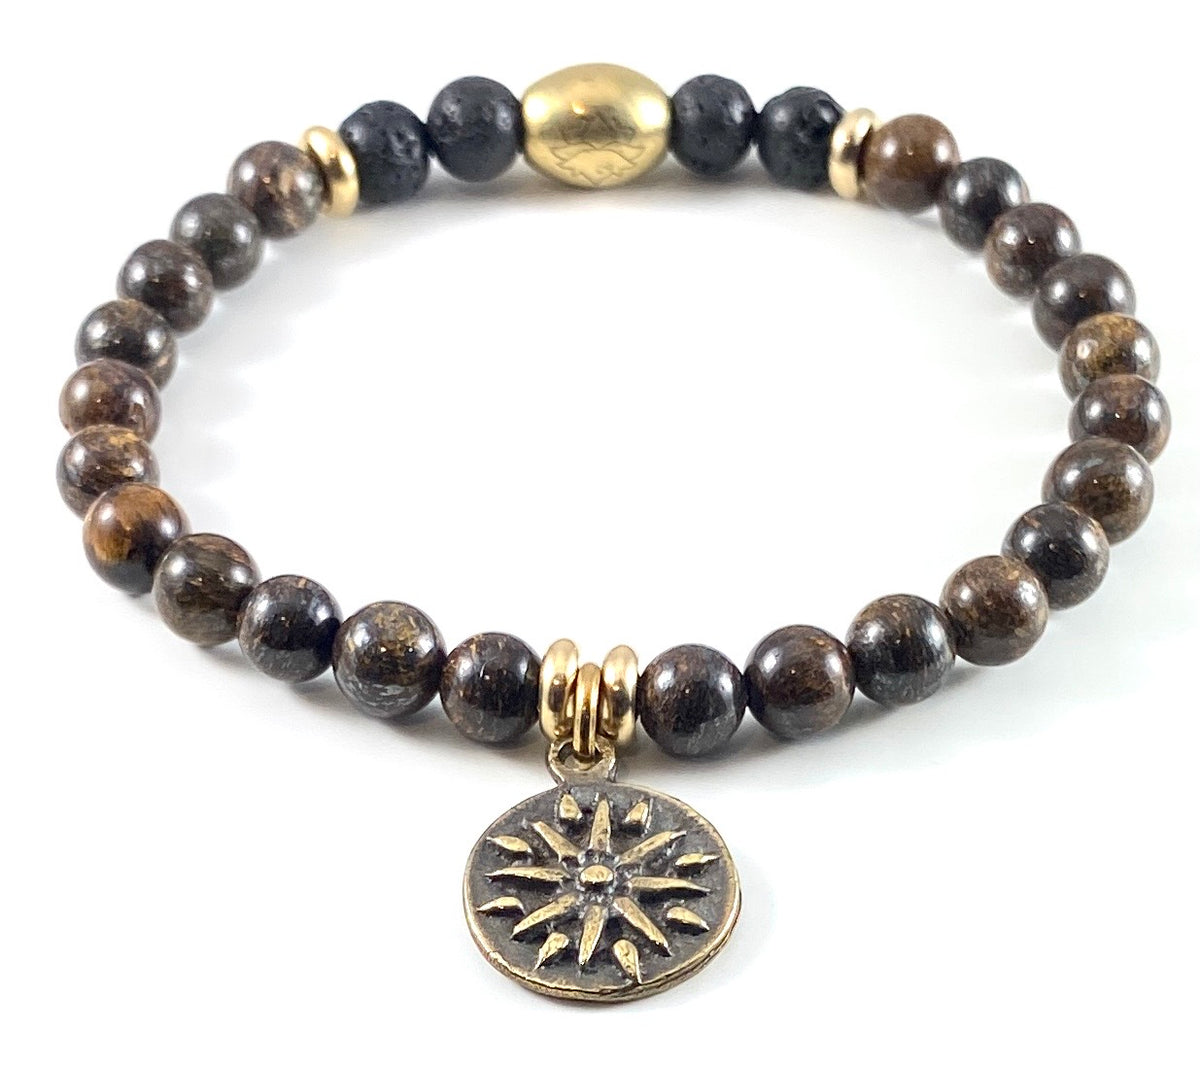 Sun Charm Diffuser Stretch Bracelet - 6mm